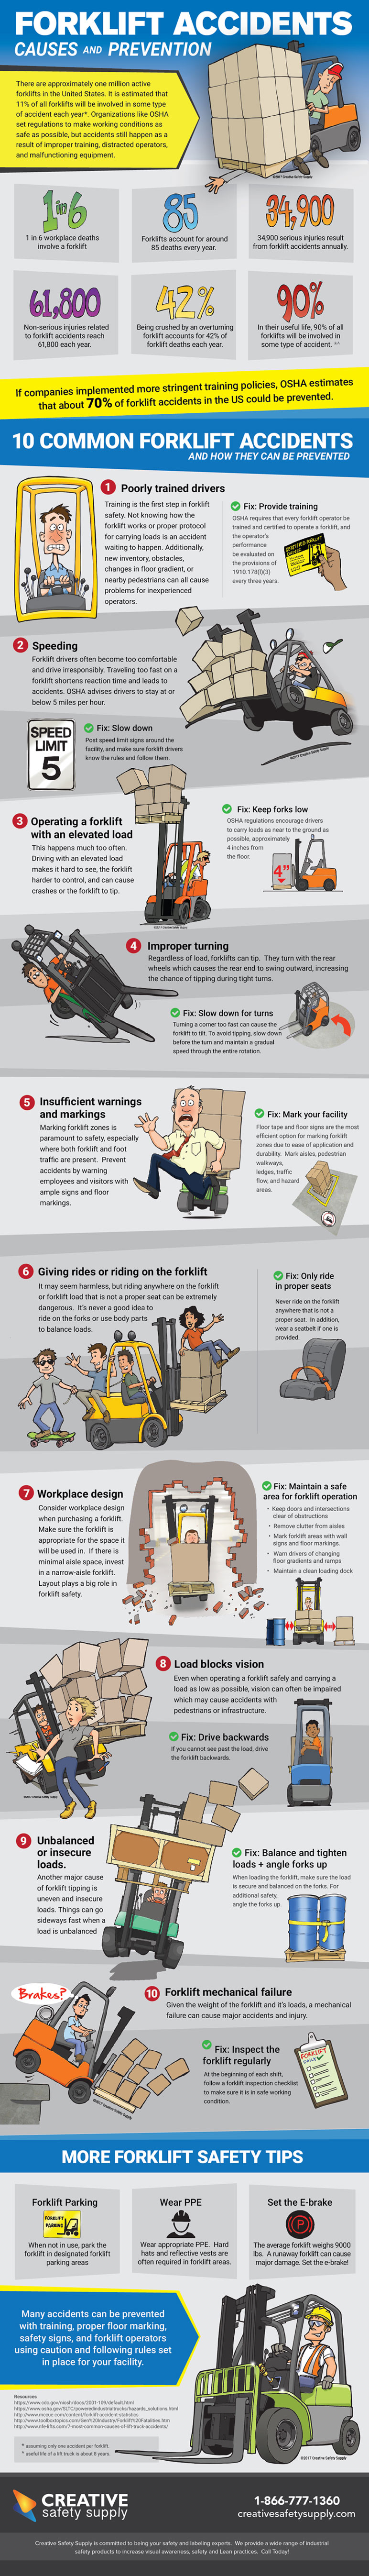 Forklift Accidents - Causes and Prevention